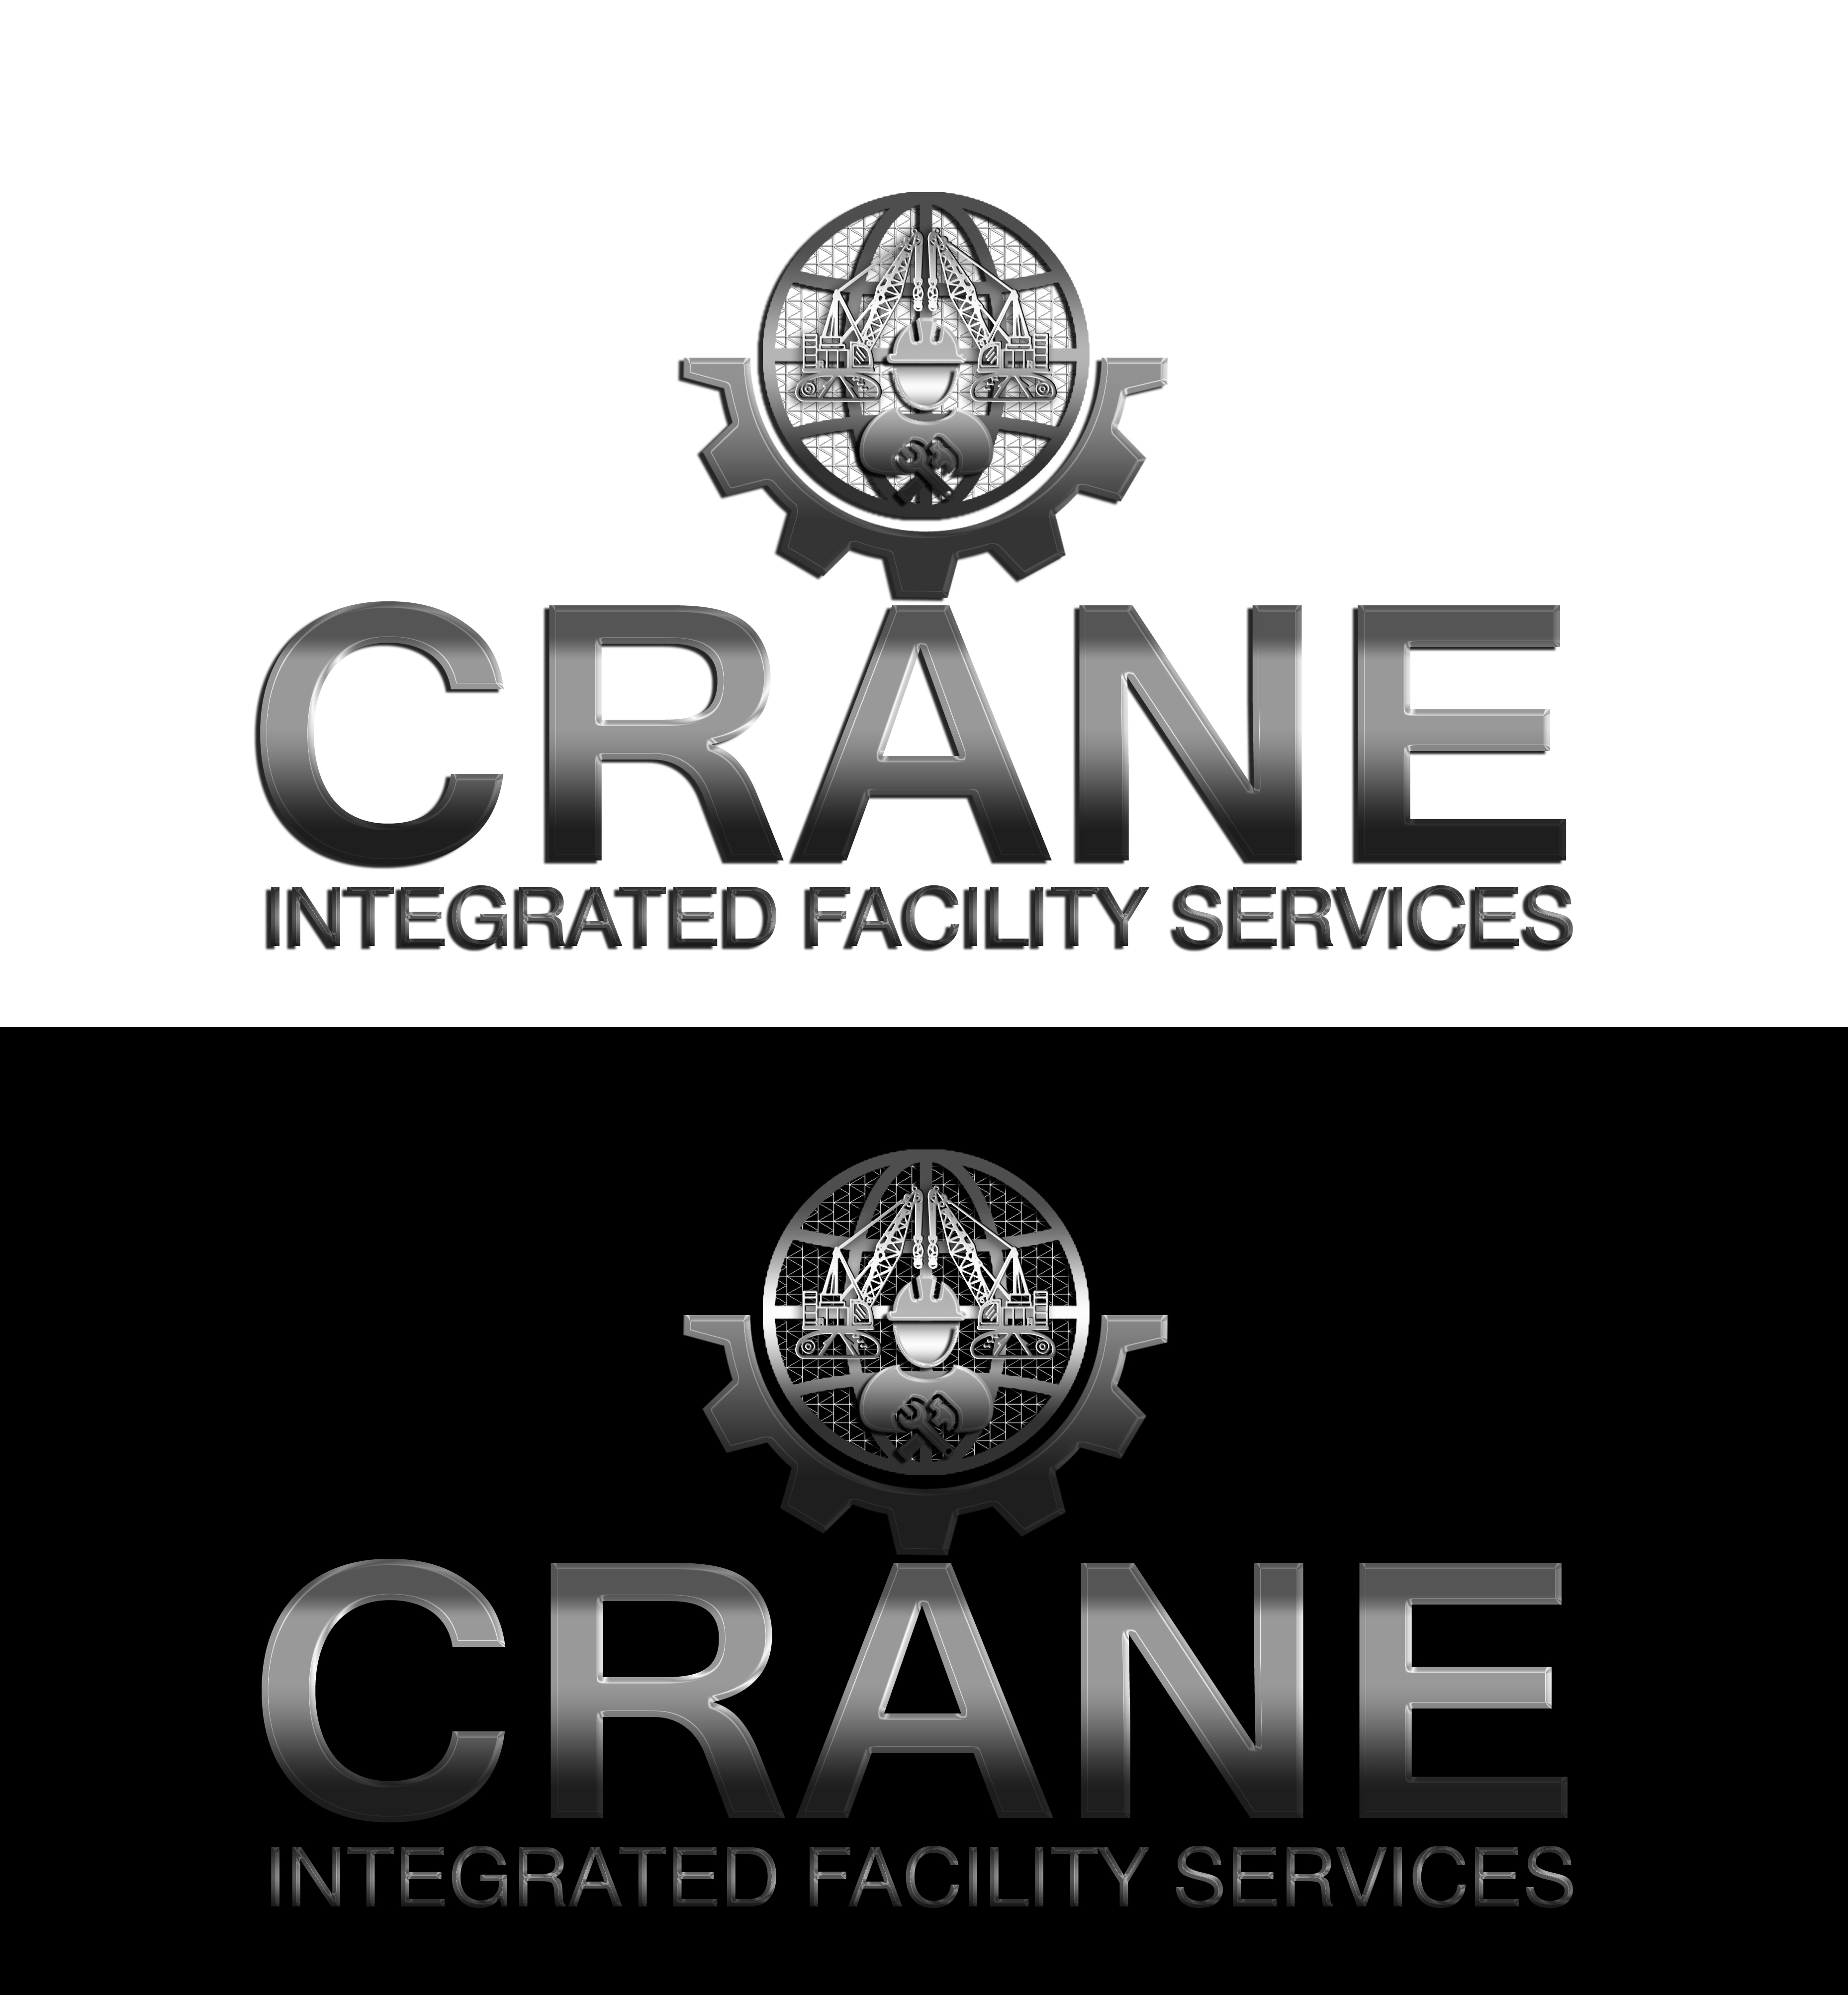 Logo Design by JSDESIGNGROUP - Entry No. 116 in the Logo Design Contest Inspiring Logo Design for Crane Integrated Facility Services.